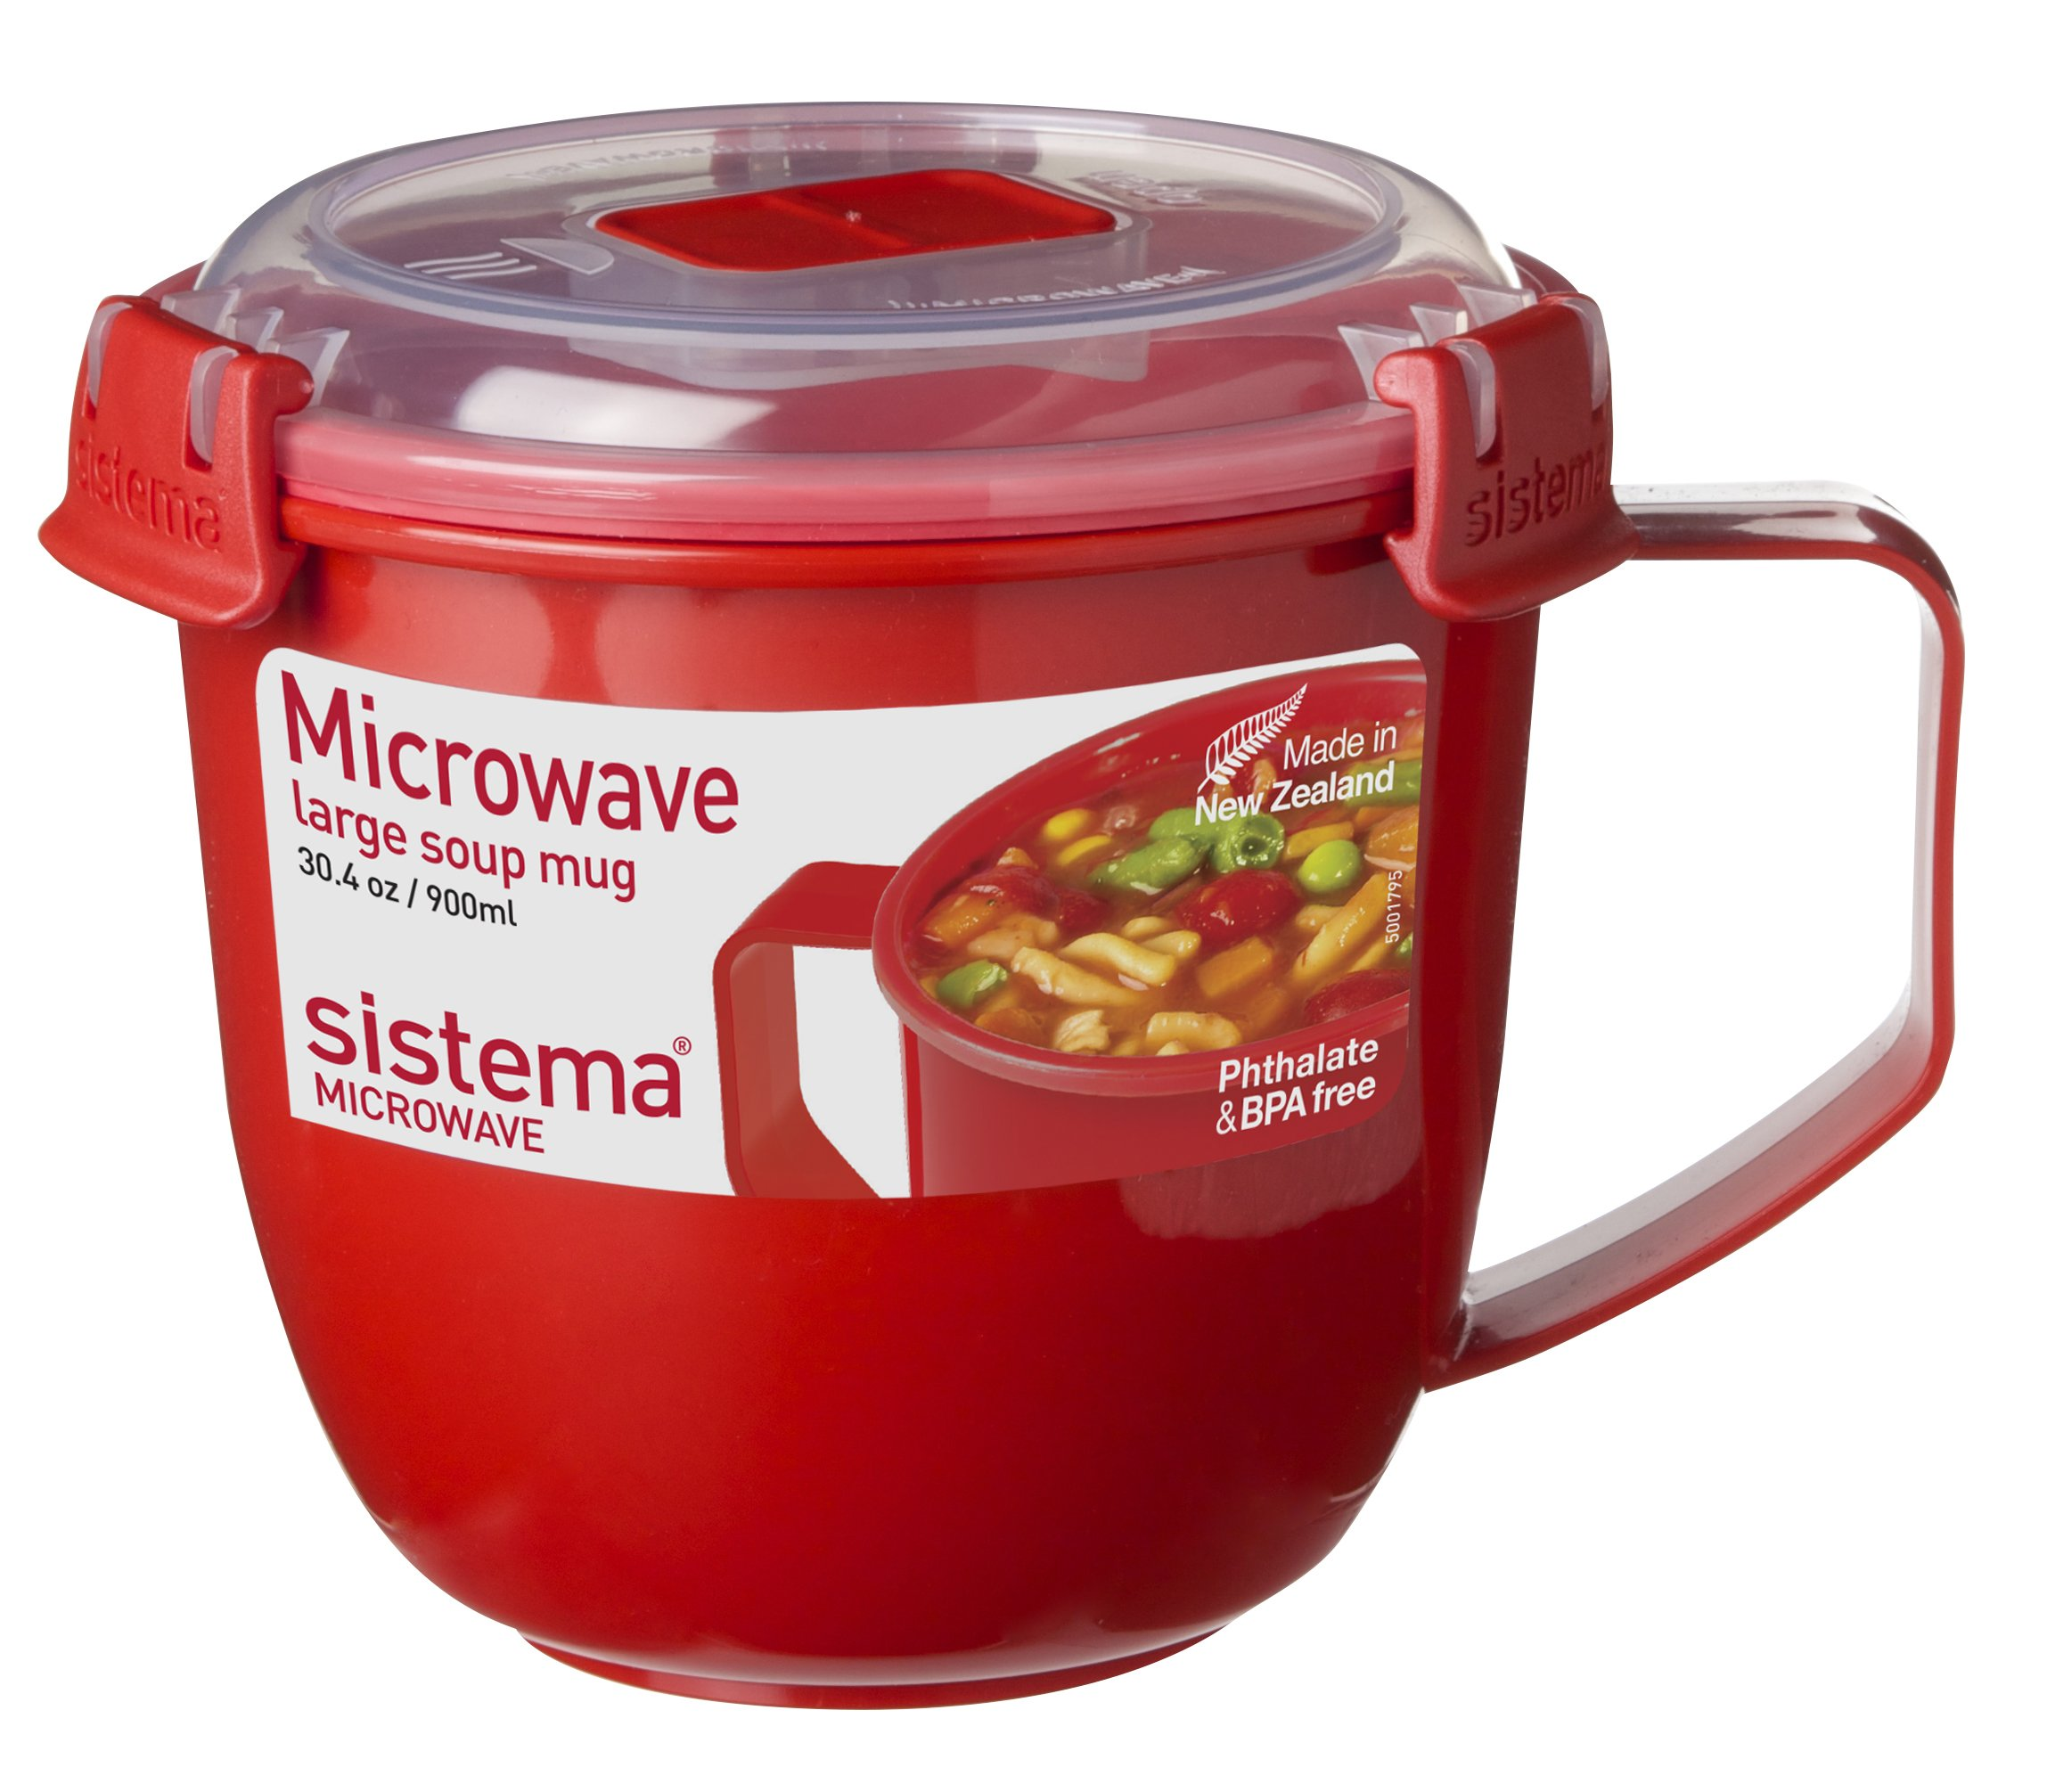 Sistema Microwave Collection Soup Mug, Large, 30.4 oz./0.9 L, Red by Sistema